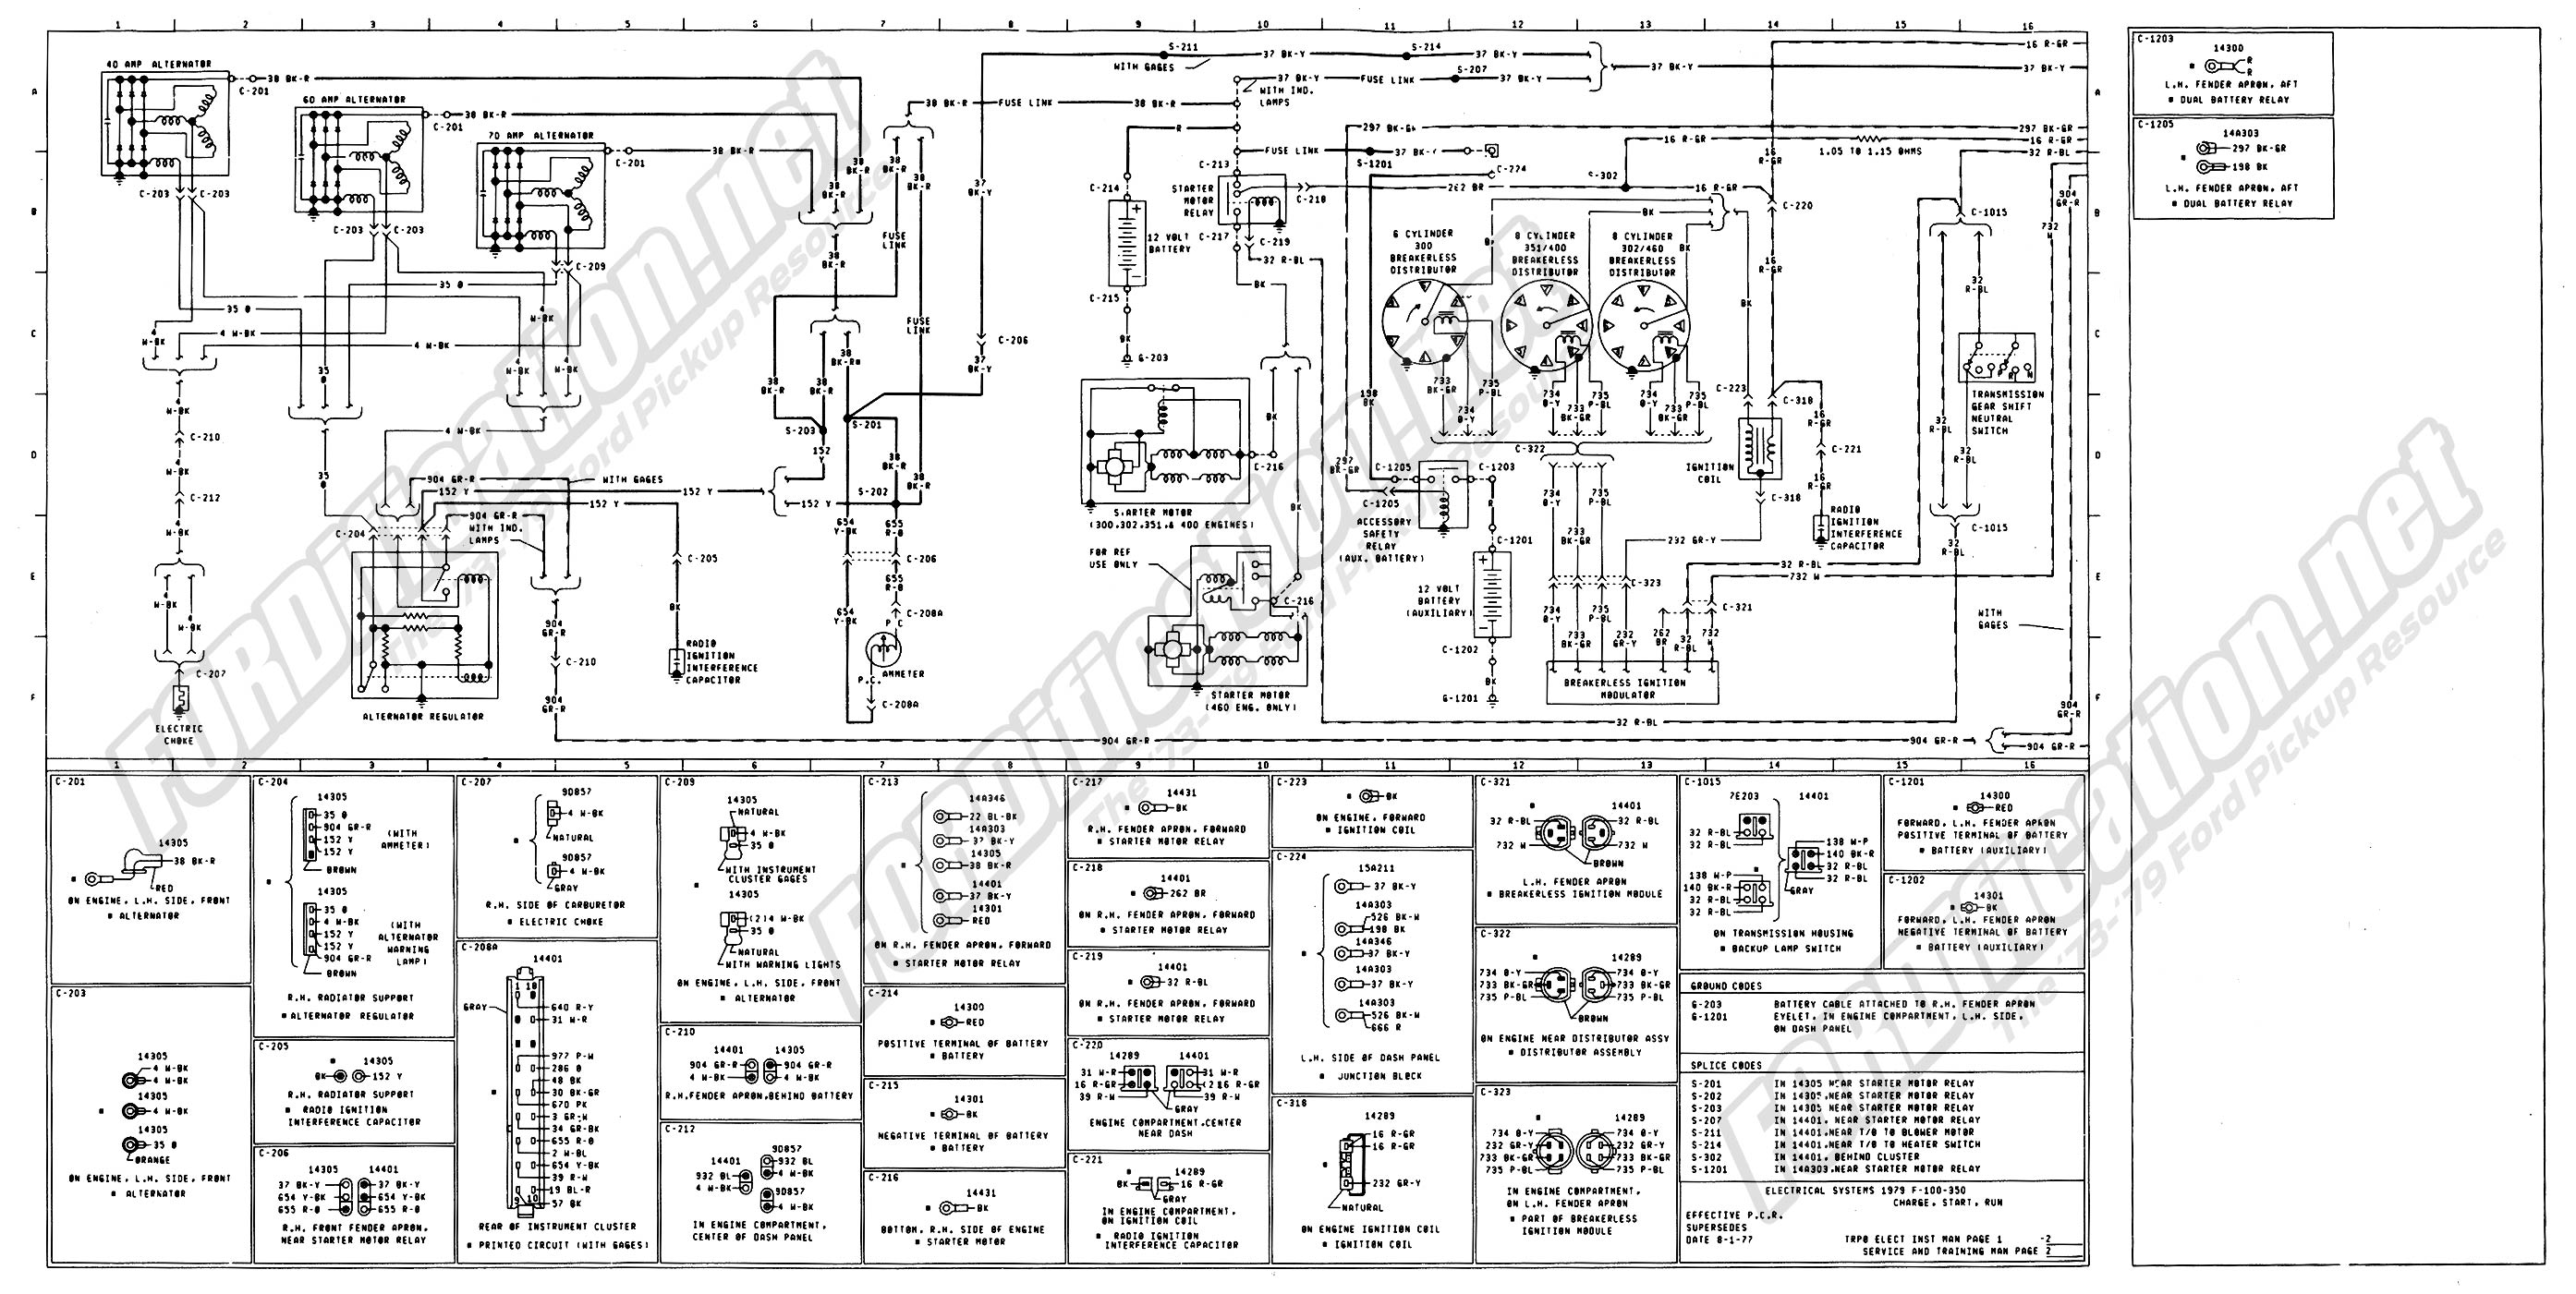 wiring_79master_2of9 1973 1979 ford truck wiring diagrams & schematics fordification net wiring diagram for dummies at n-0.co